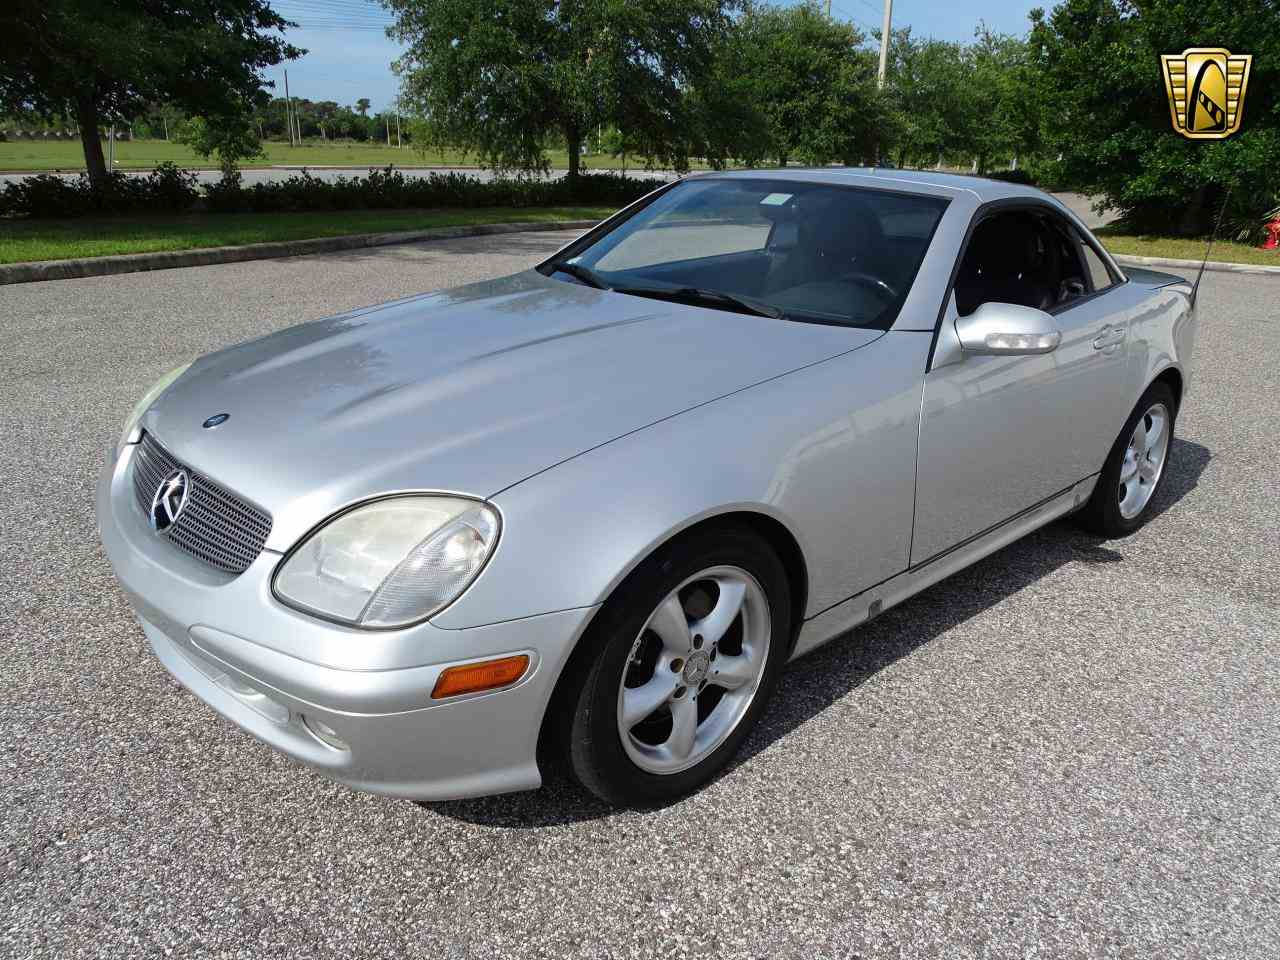 2001 mercedes benz slk320 for sale cc for 2001 mercedes benz slk320